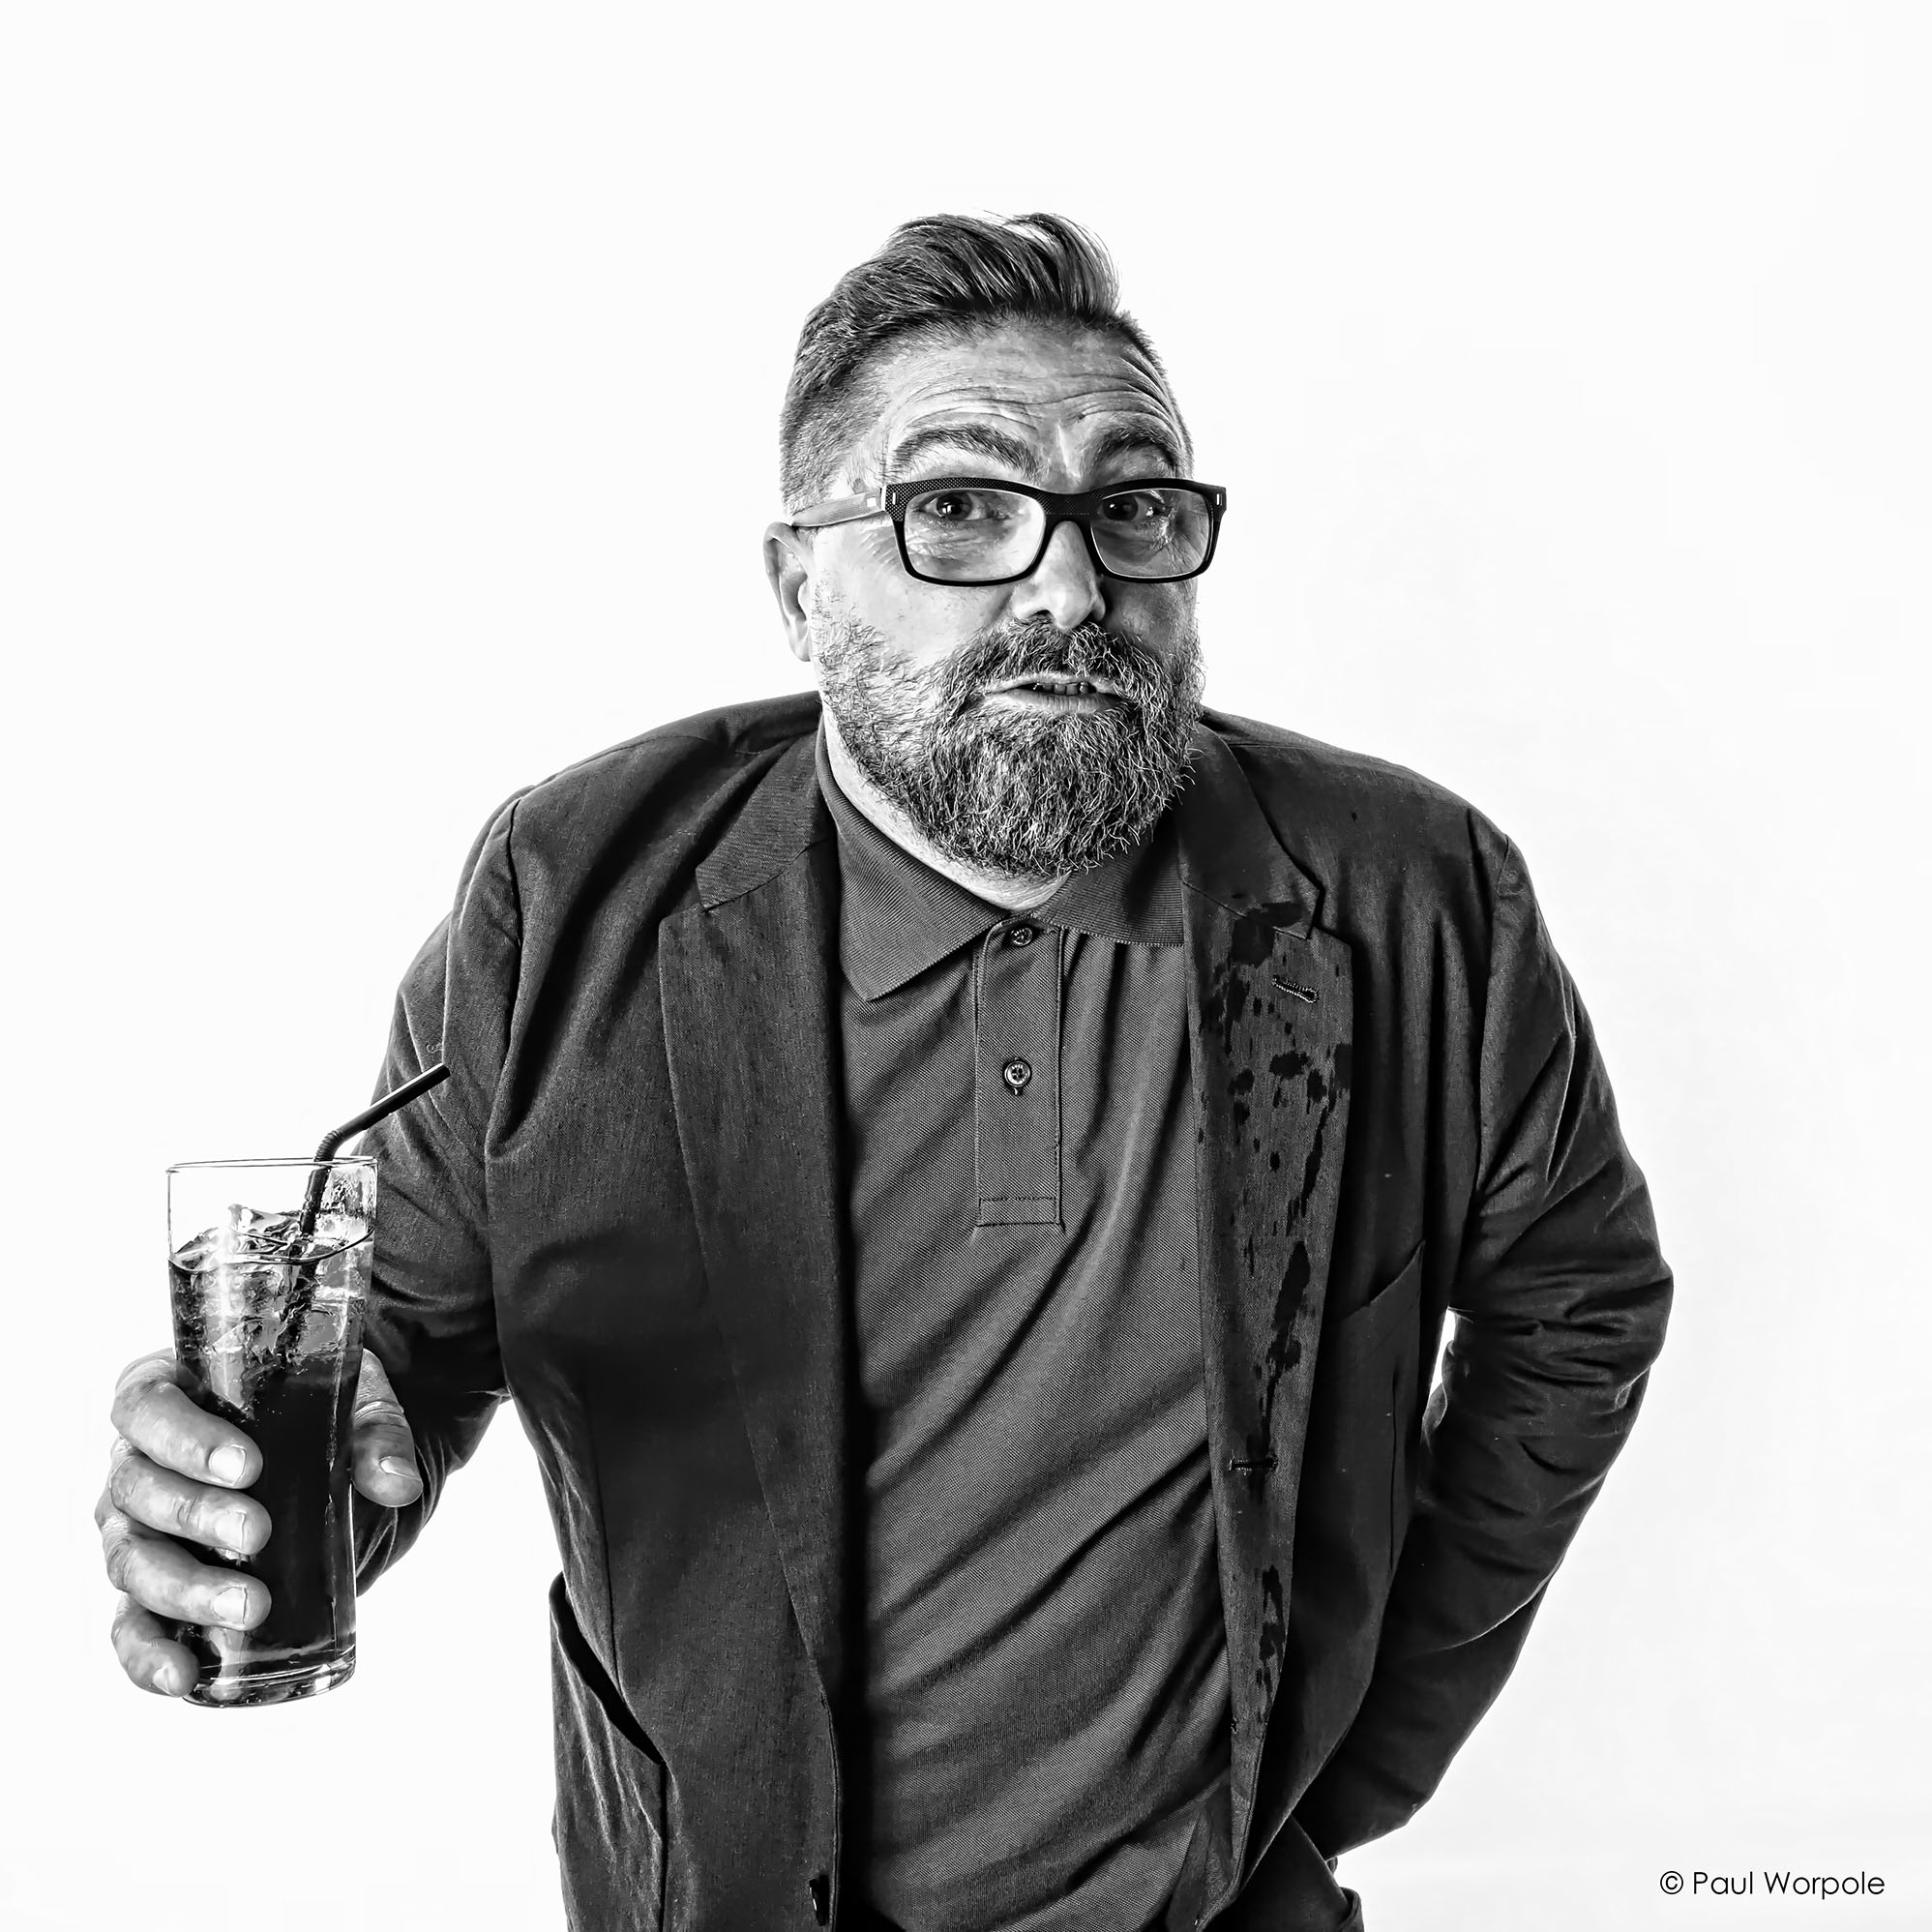 Black and white portrait of a man with a beard and glasses holding a drink with a straw © Paul Worpole